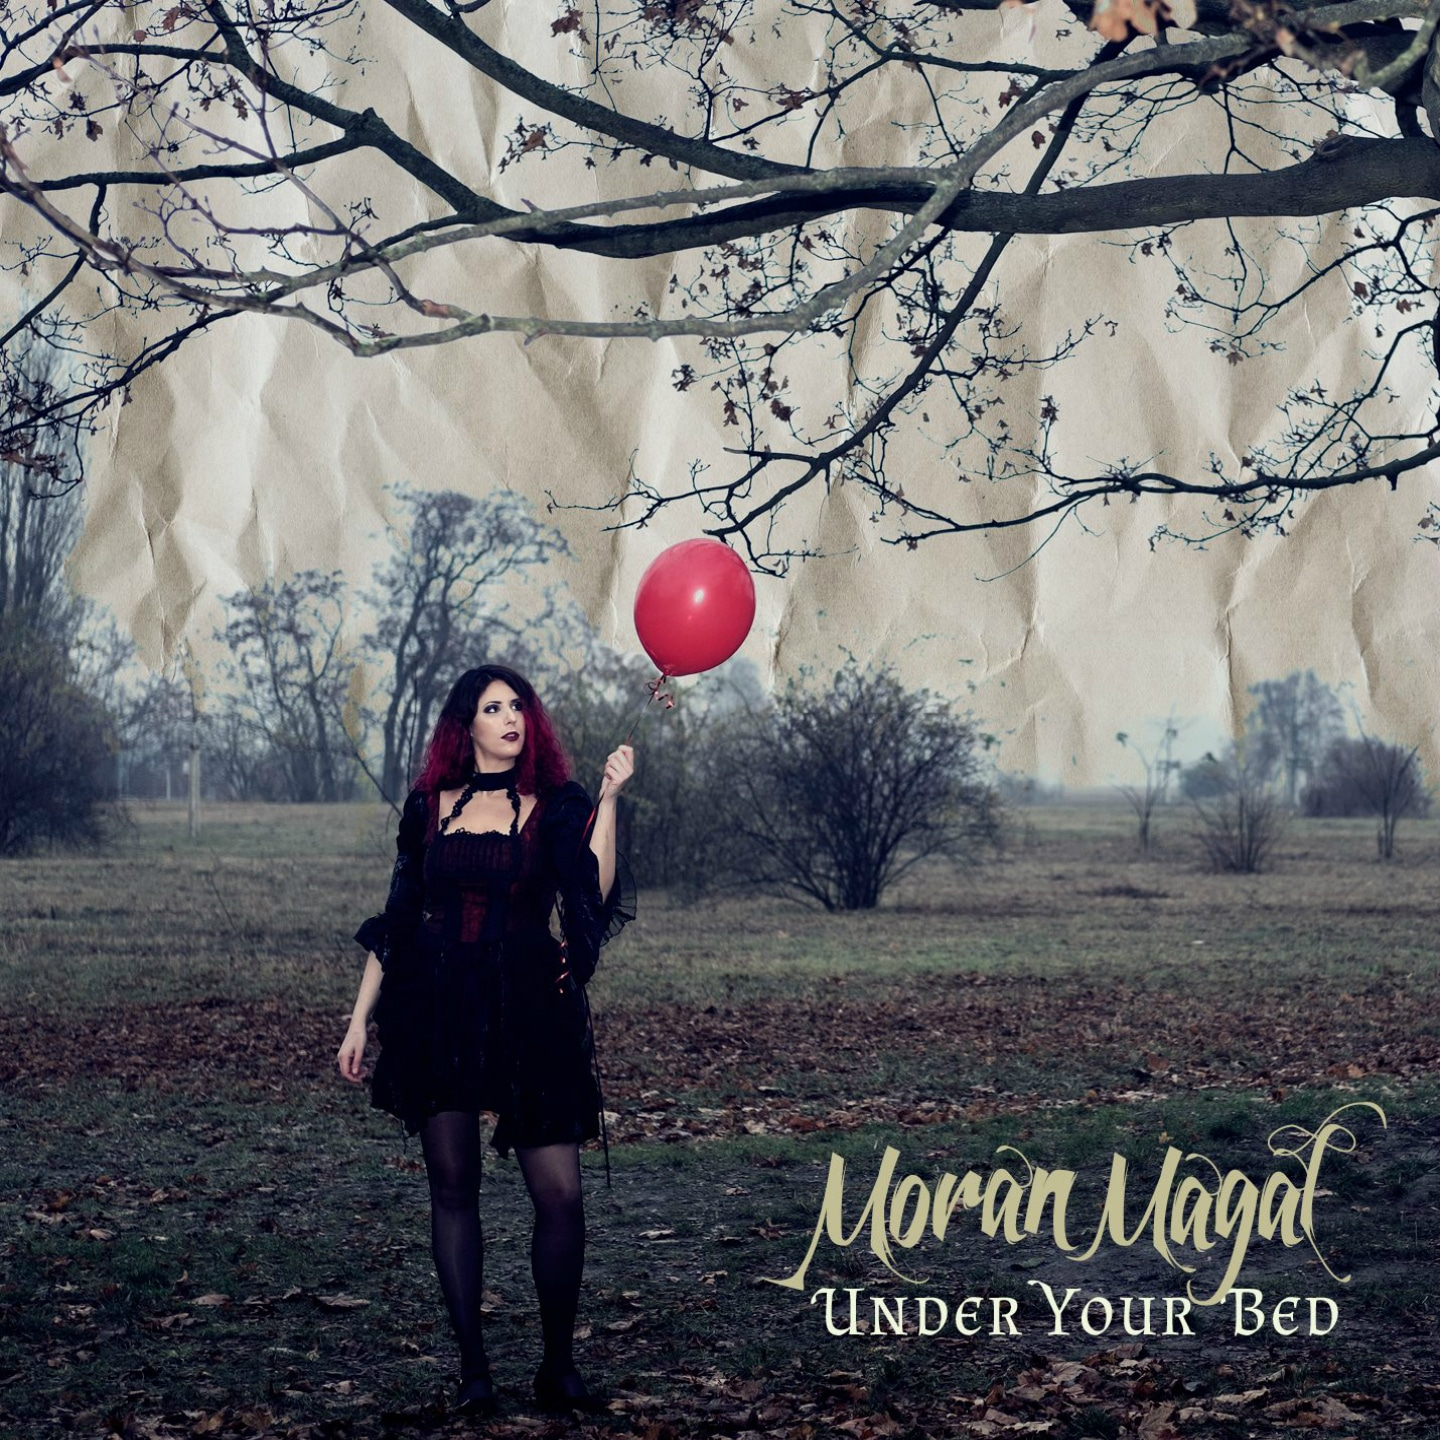 Moran Magal - Under Your Bed